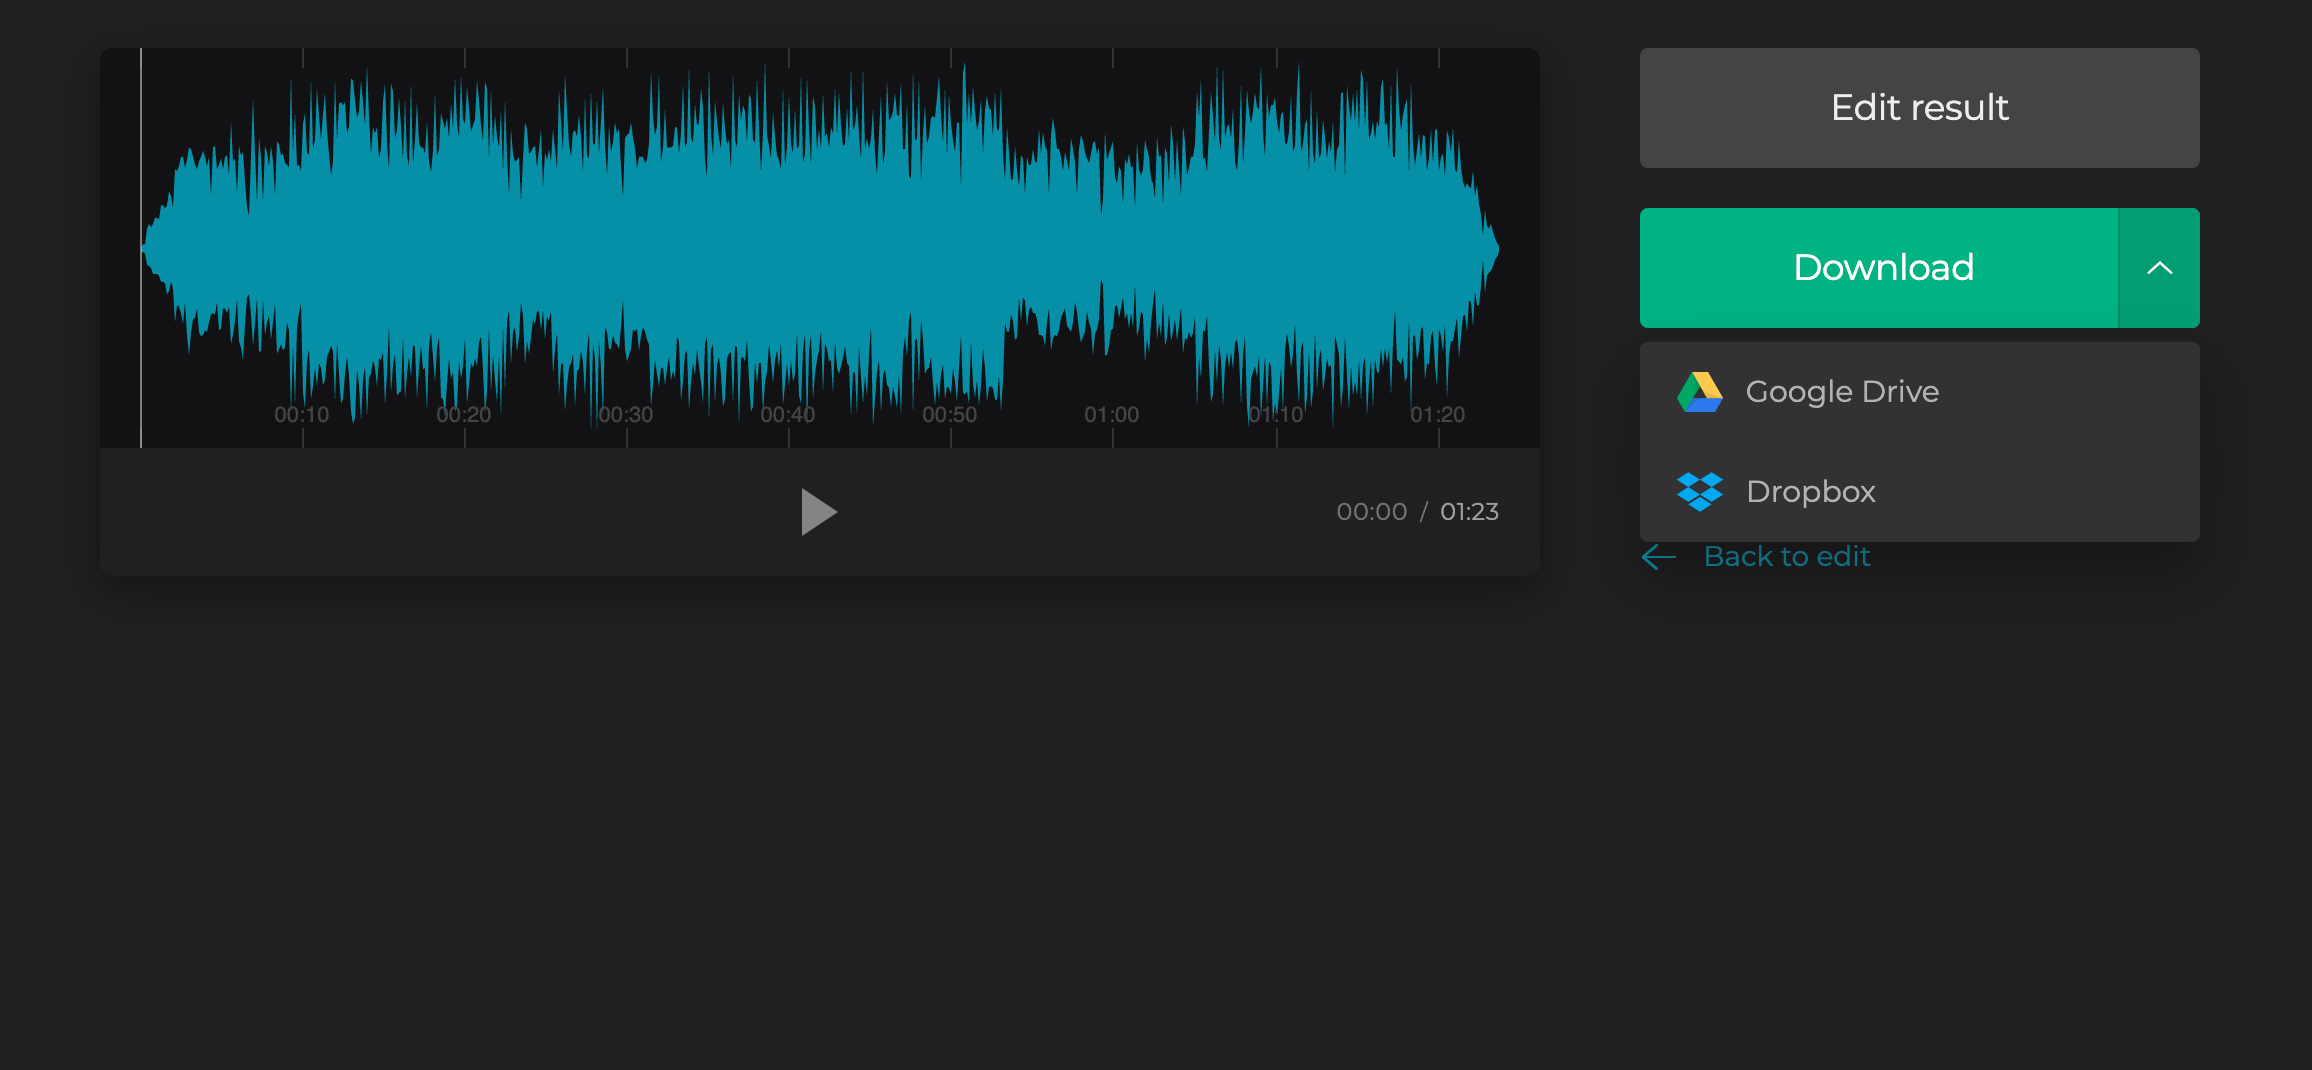 Download audio extracted from MP4